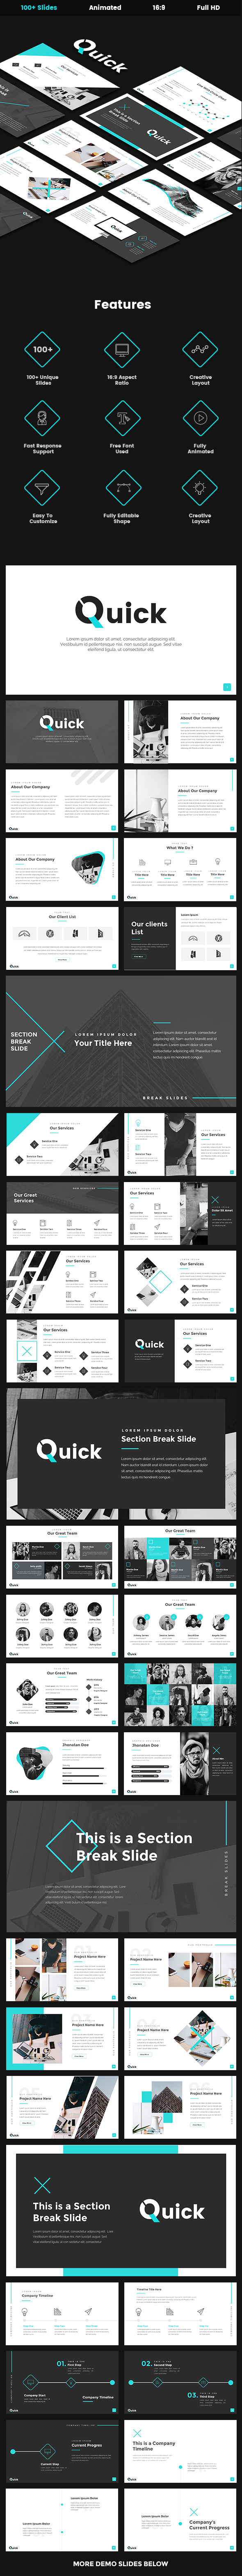 Quick - Creative Google Slides Template - Google Slides Presentation Templates